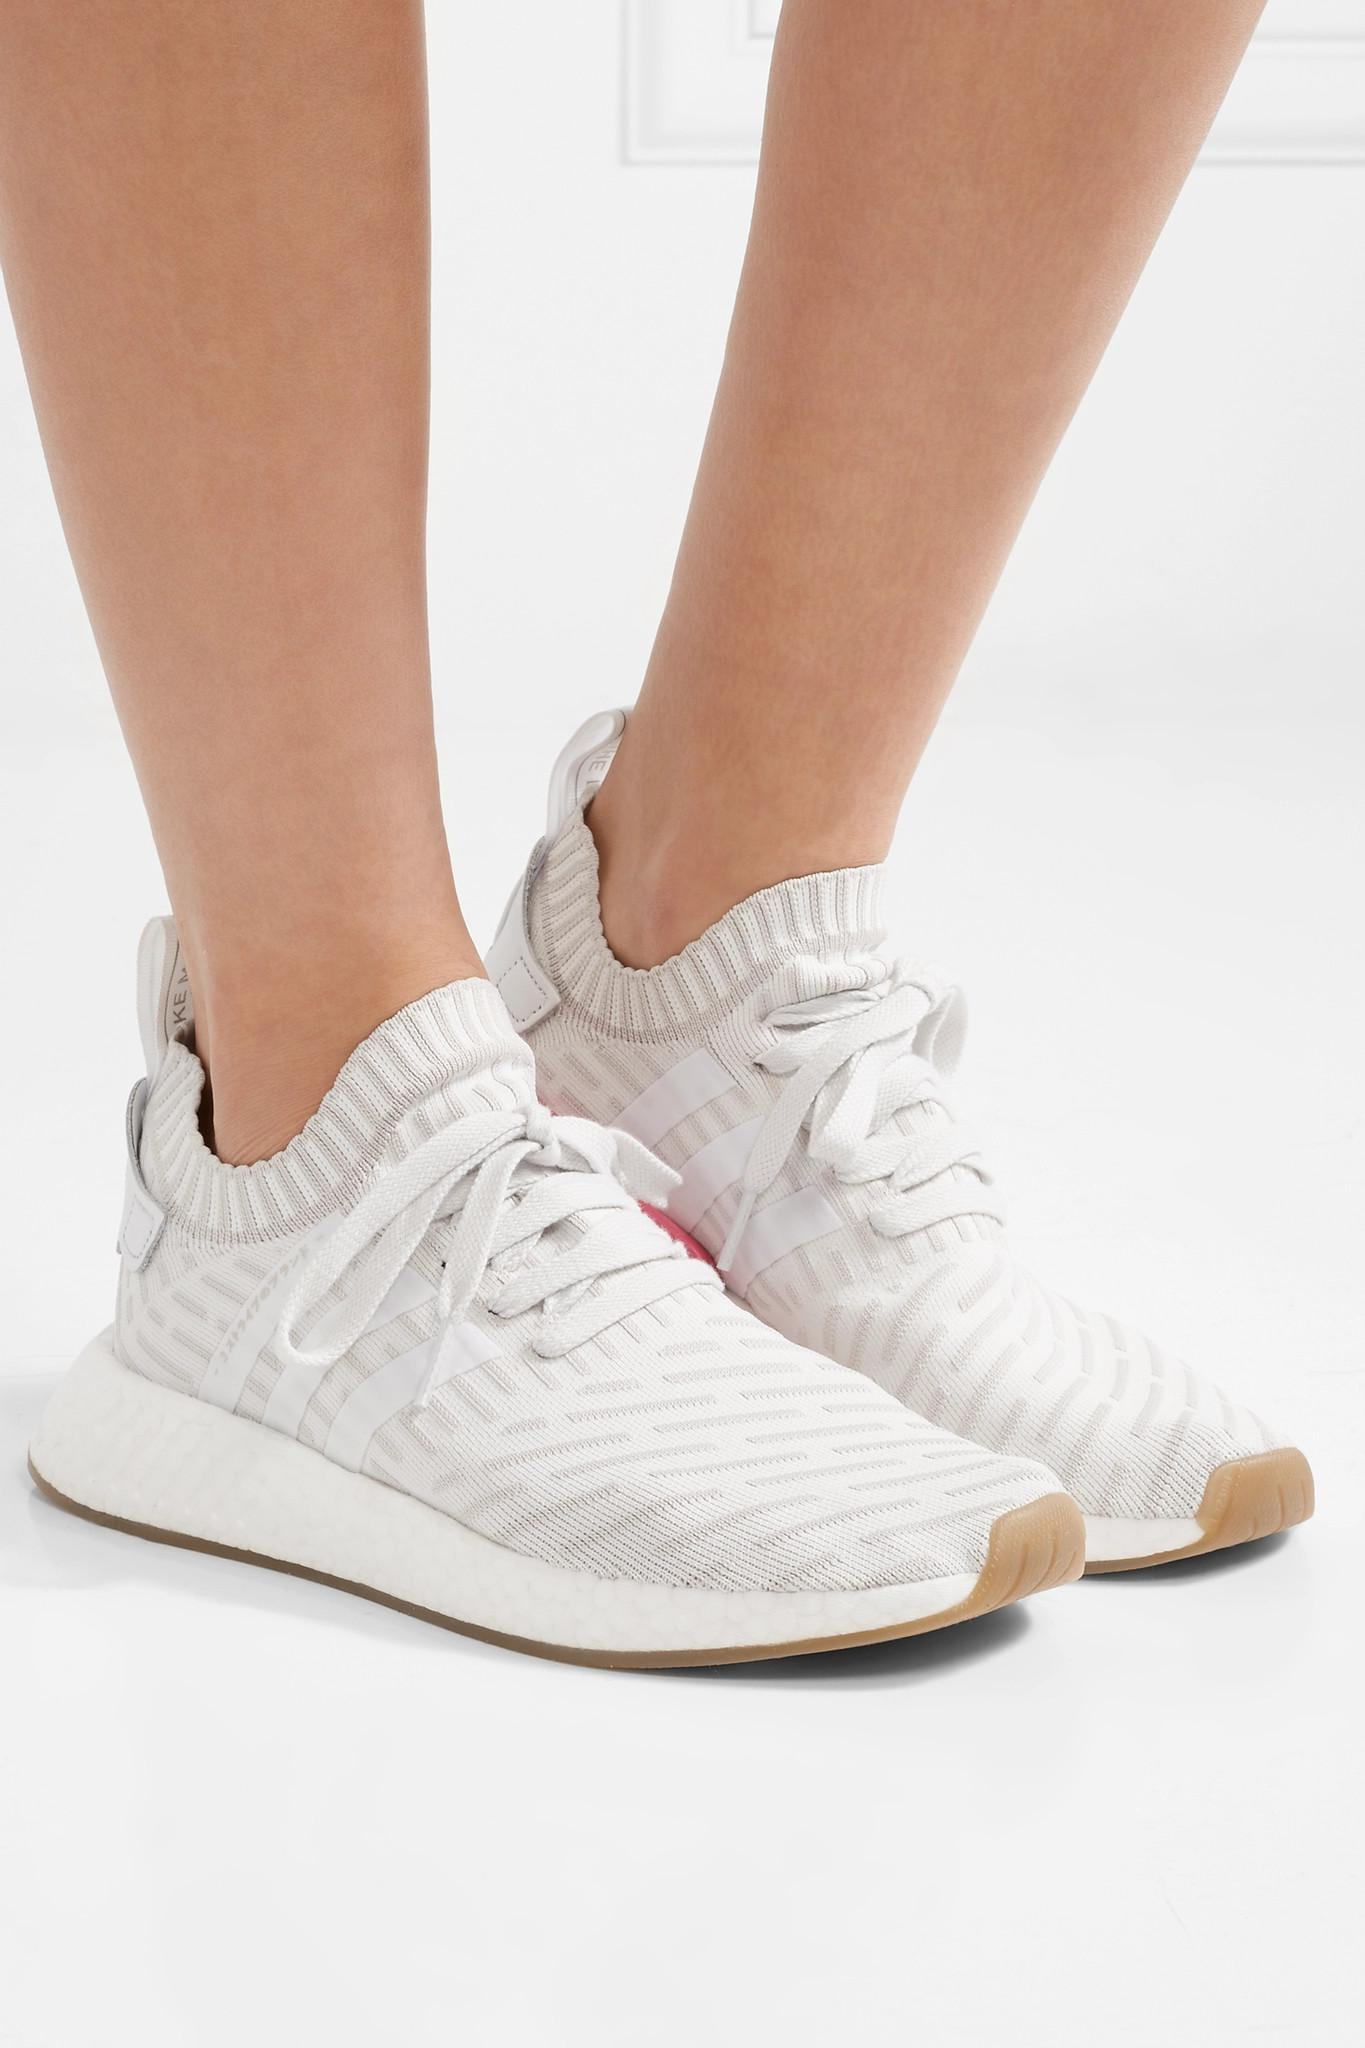 b9d3d2c1c Lyst - adidas Originals Nmd r2 Leather-trimmed Primeknit Sneakers in ...